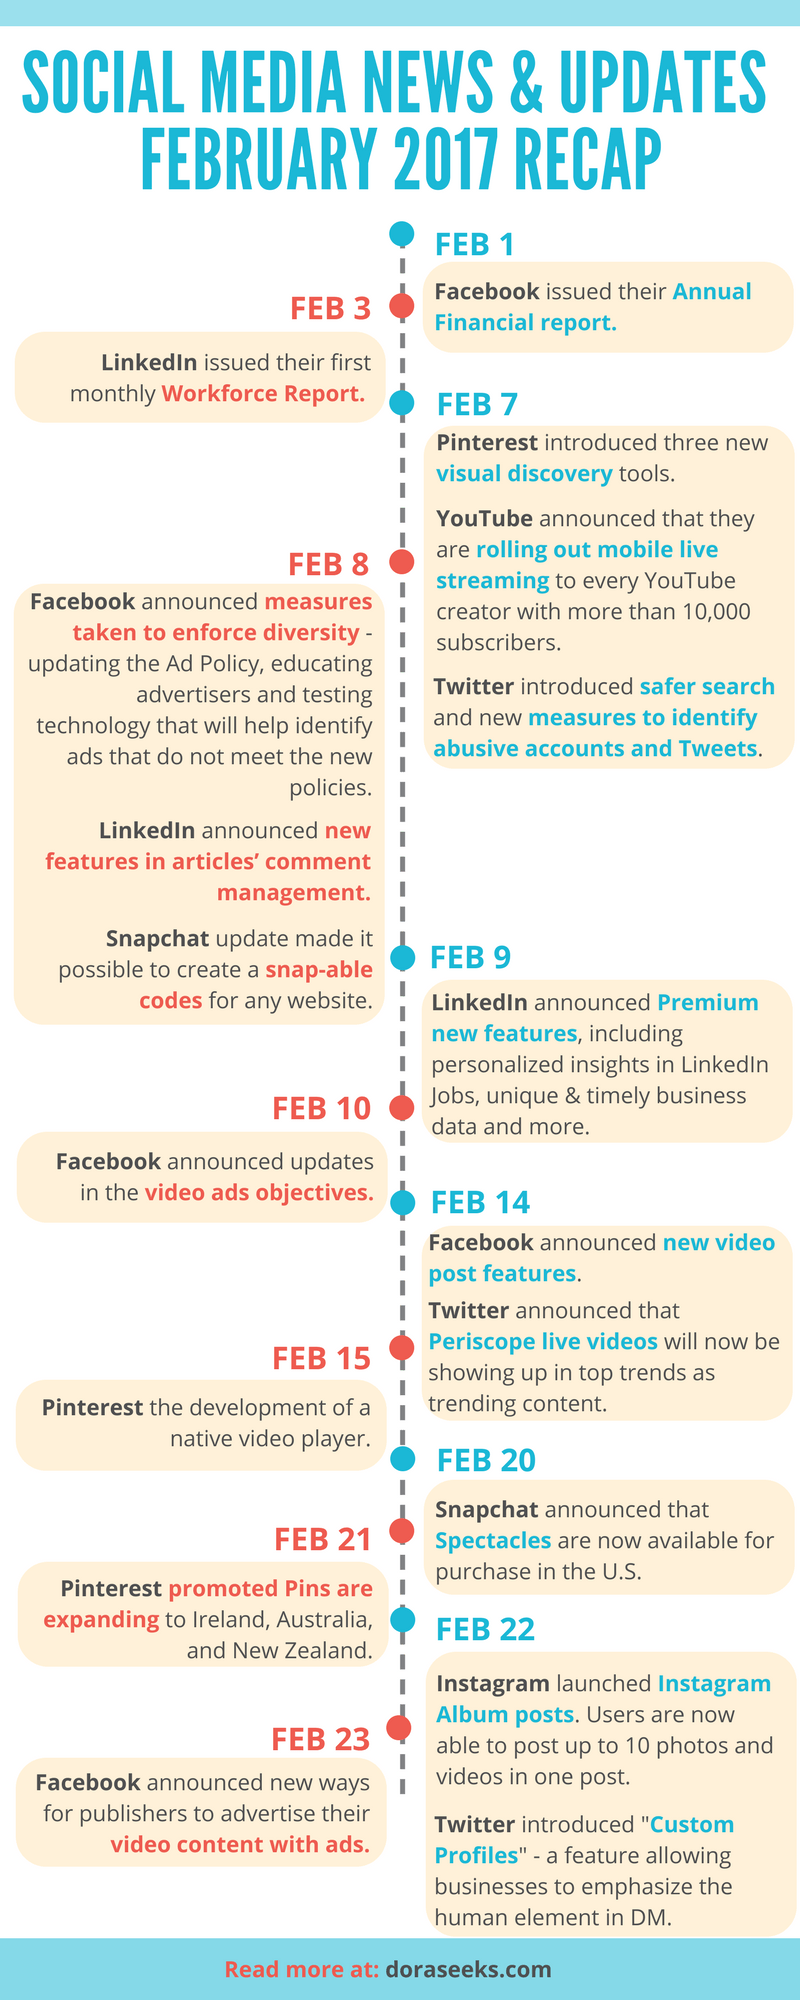 Social Media Marketing News & Updates February 2017 Infographic